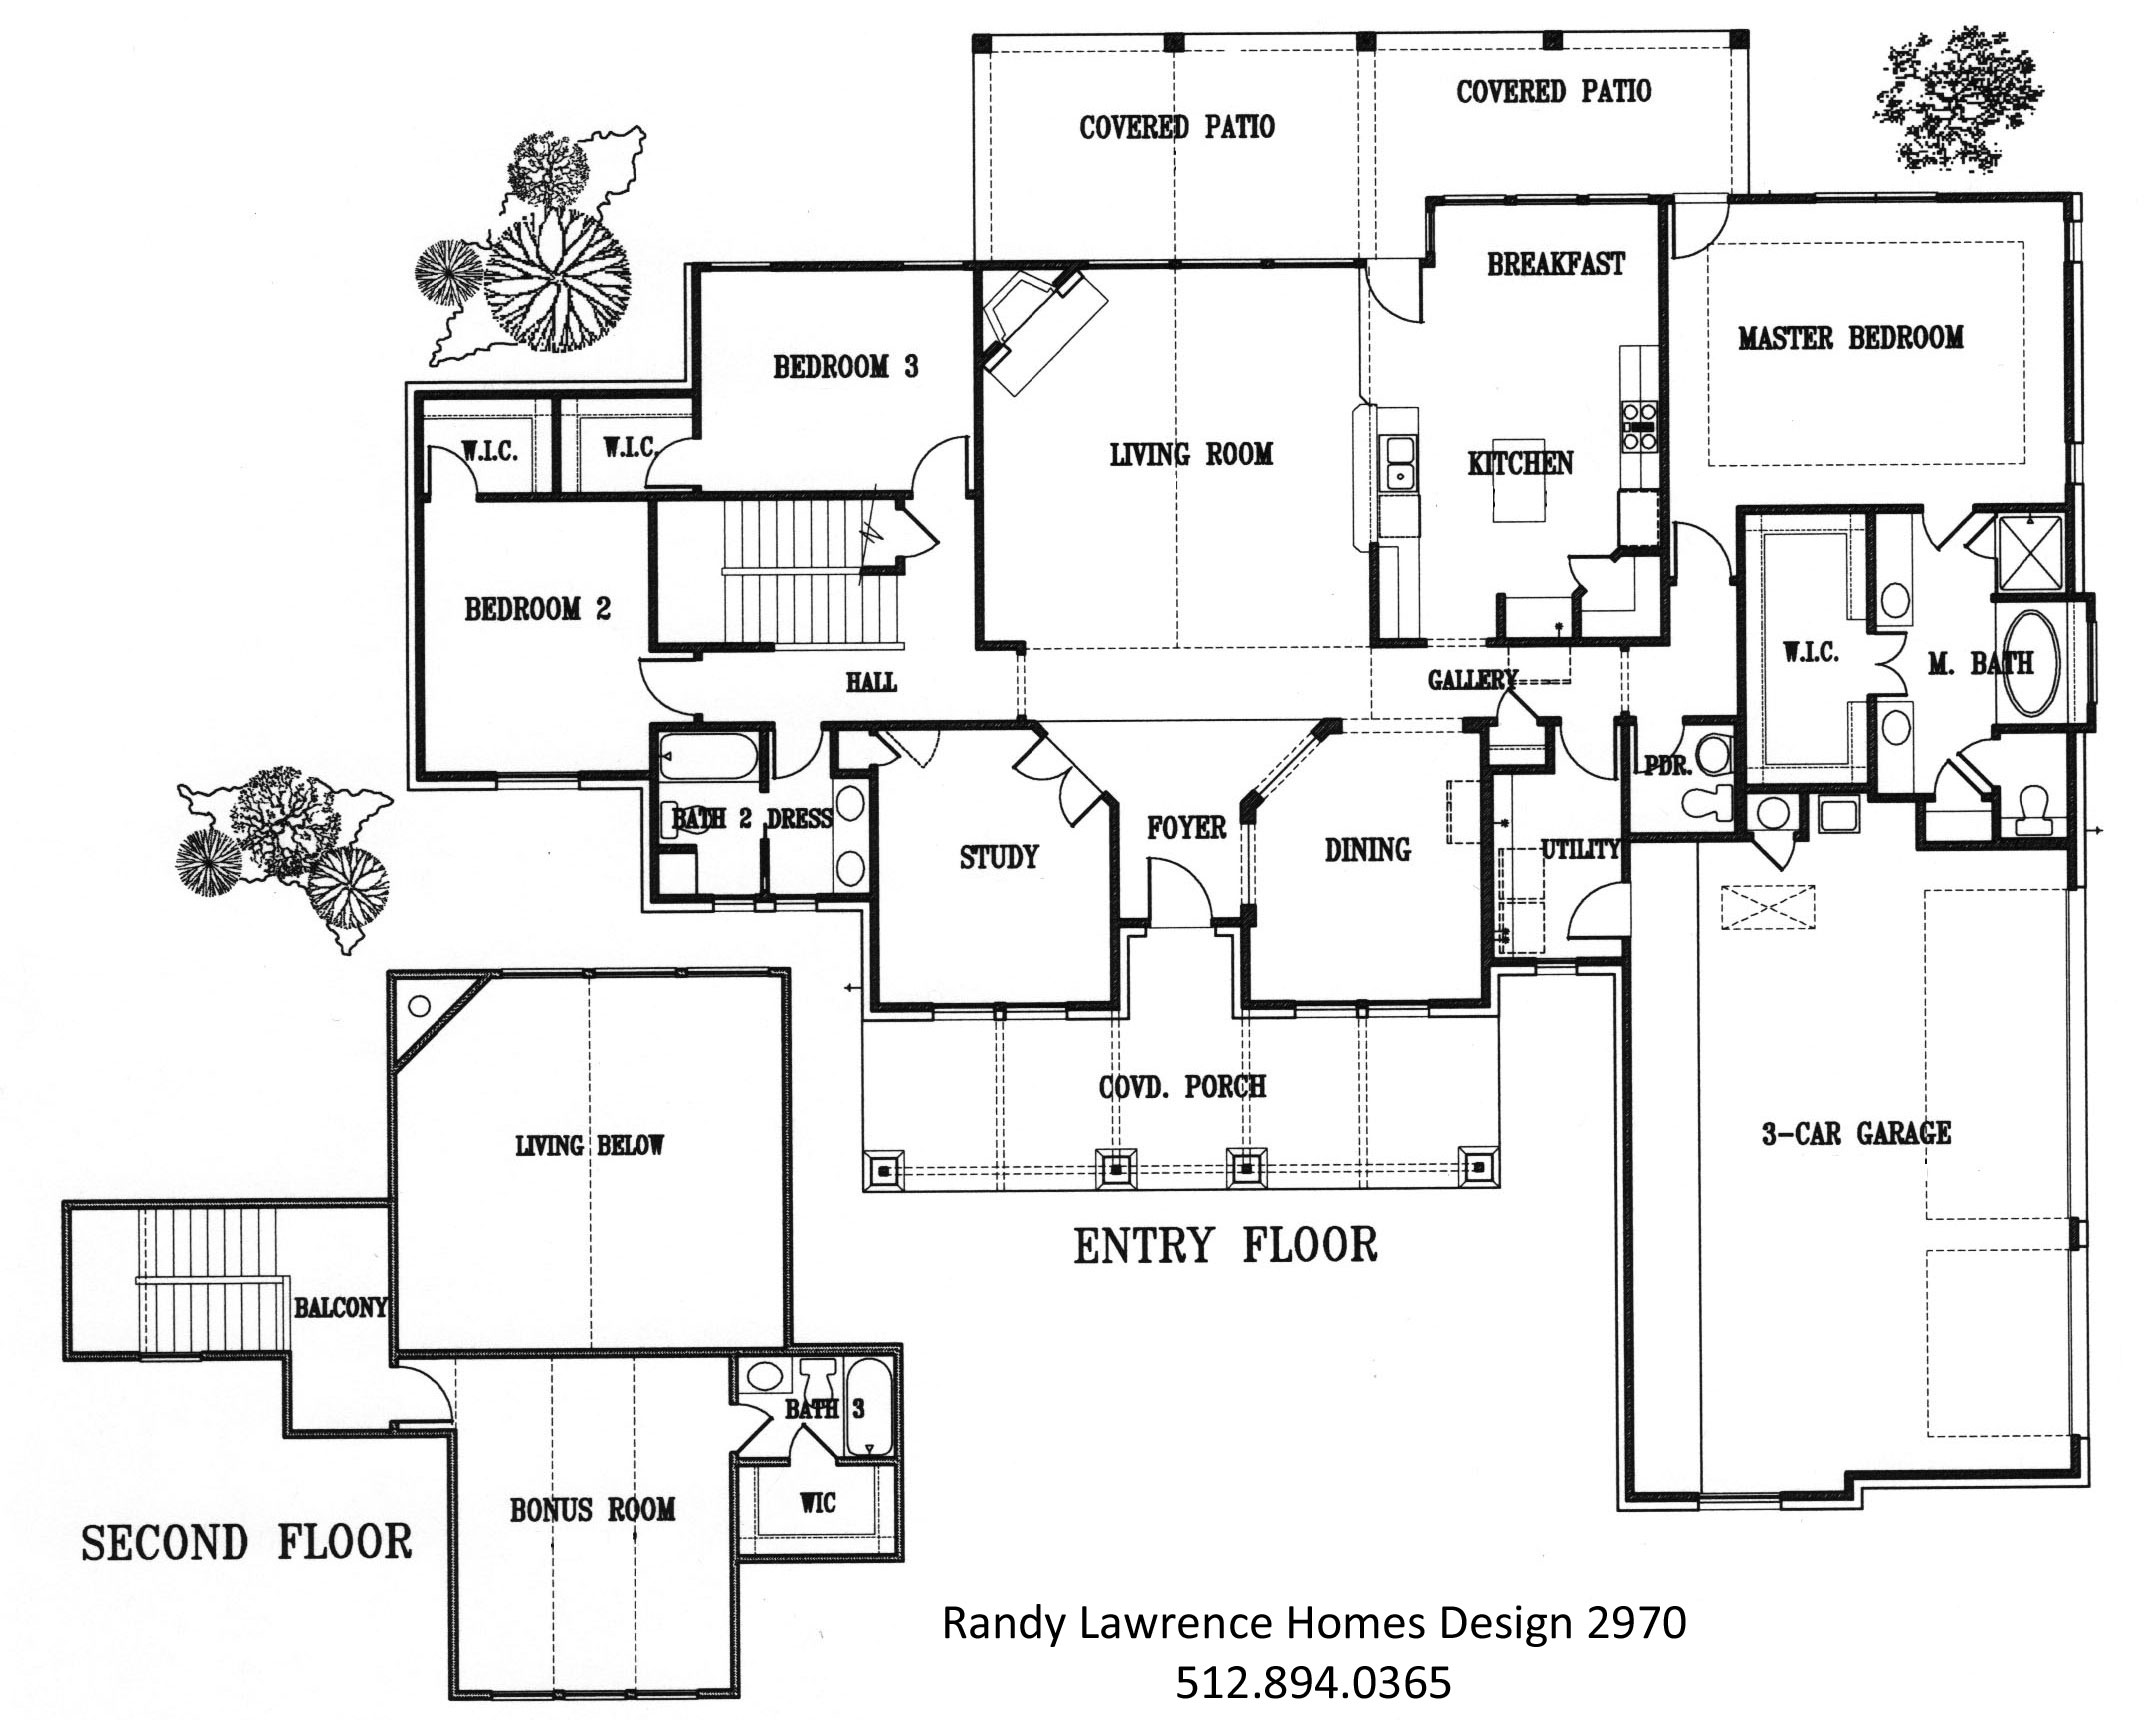 Floor Plans Randy Lawrence Homes